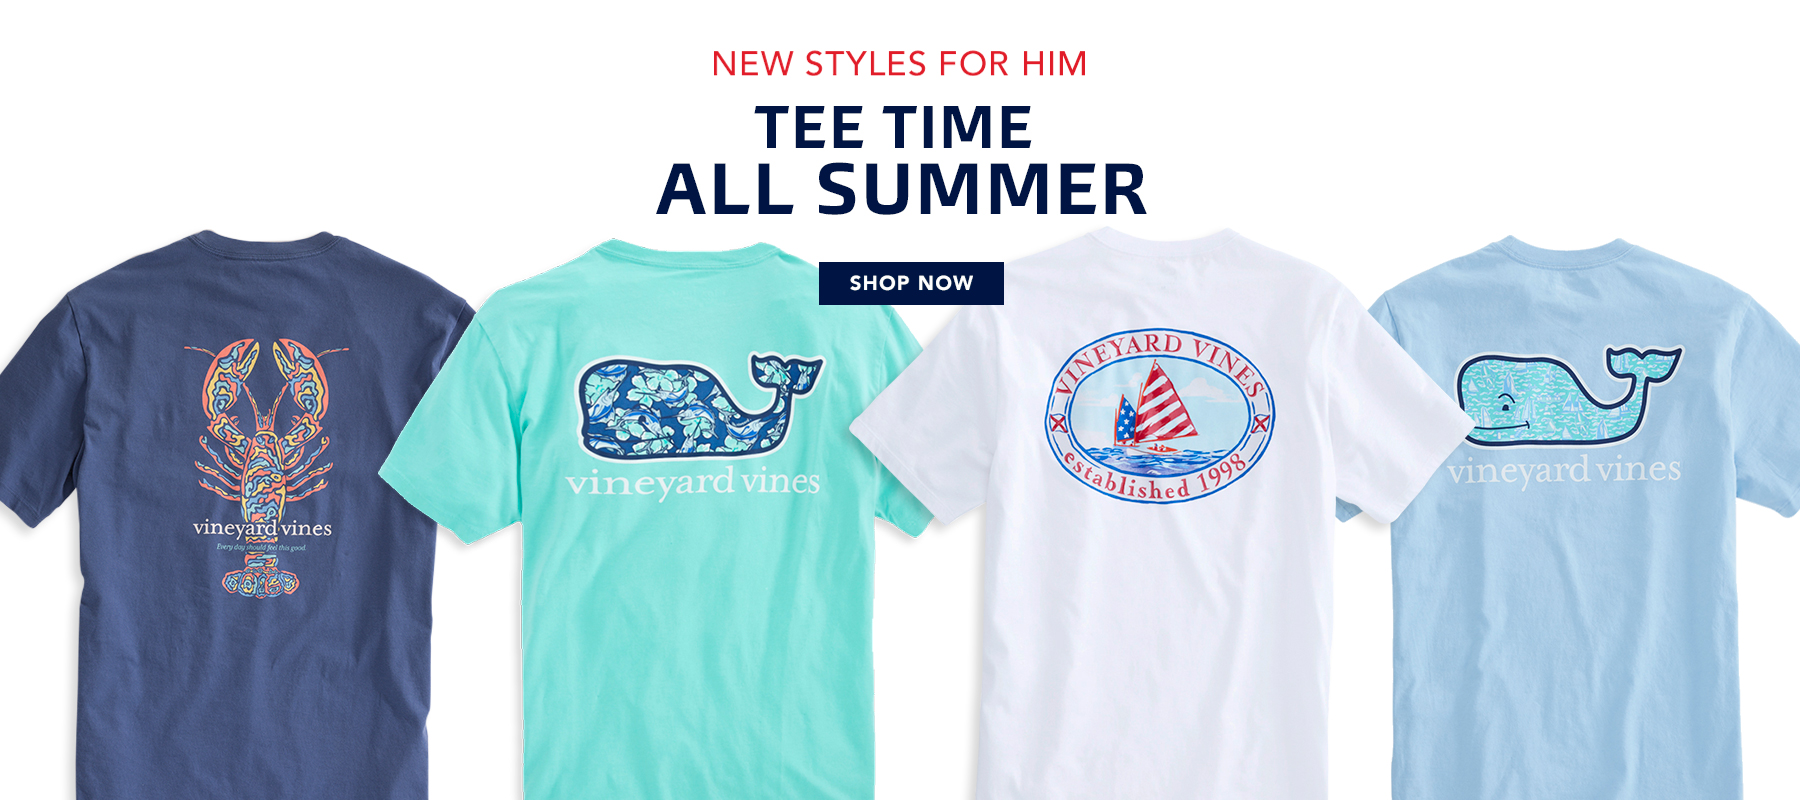 New Styles for Him. Tee Time All Summer. Shop Now.